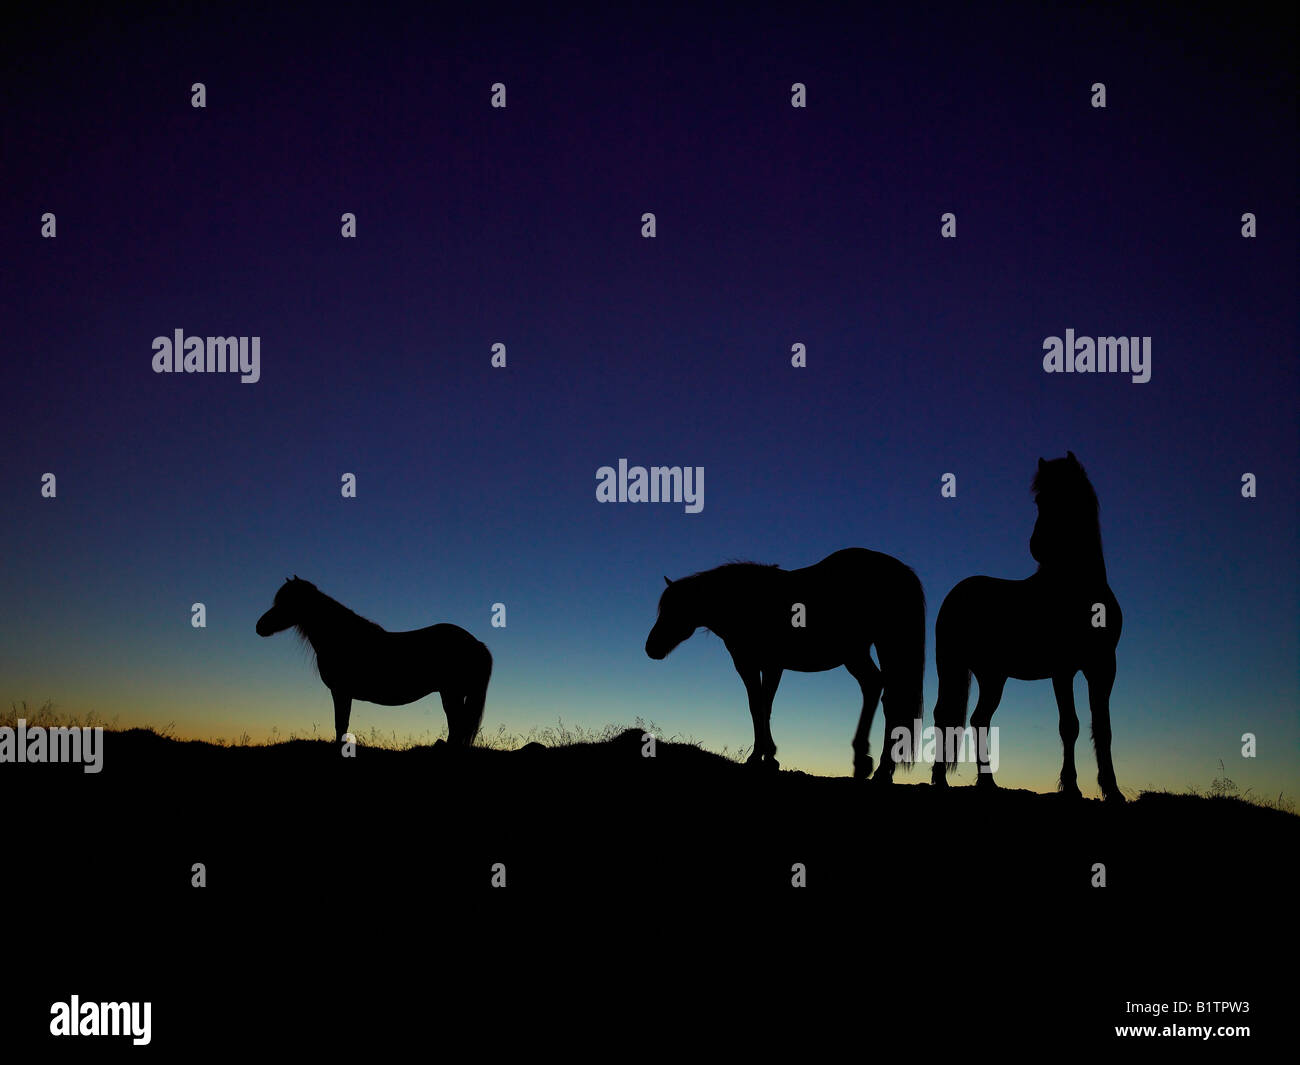 Icelandic Horses Silhouetted Against the Evening Sky, Iceland Stock Photo